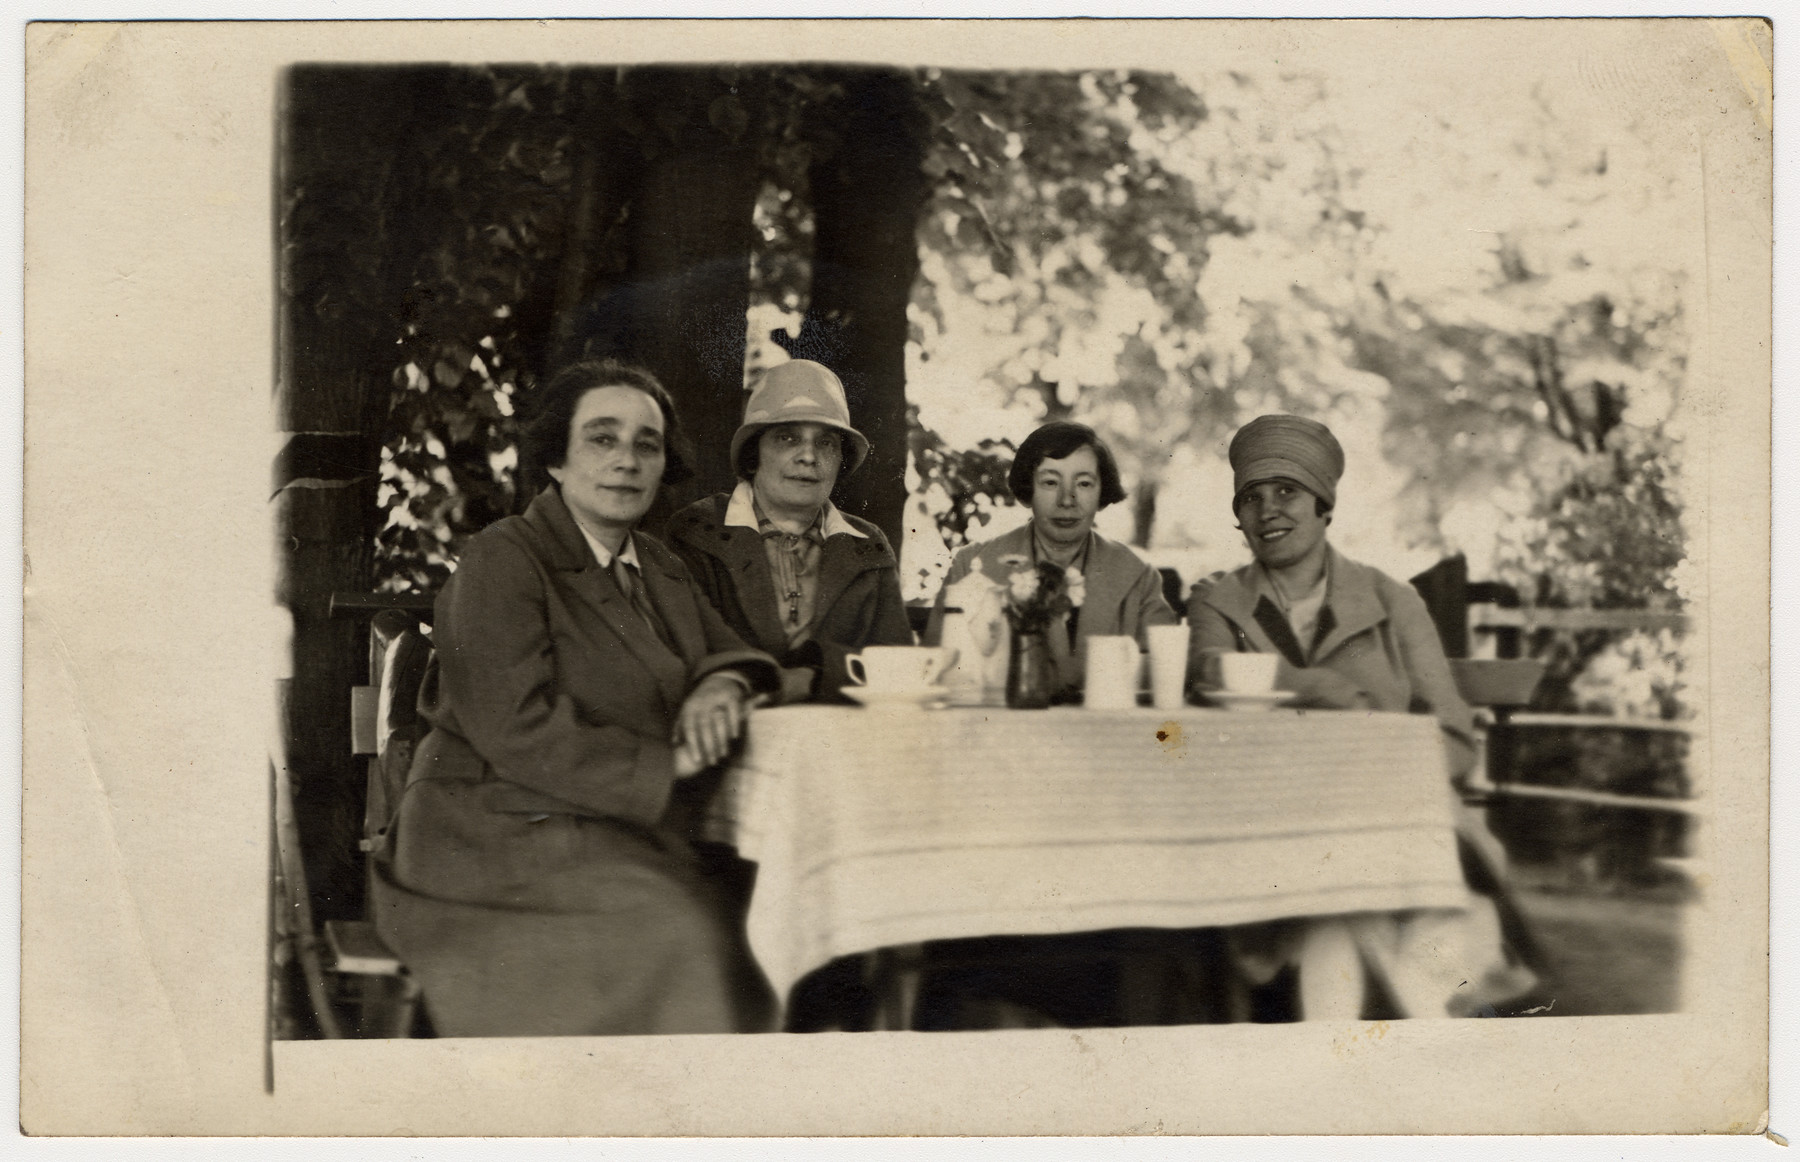 Four sisters enjoy a cup of coffee at an outdoor table.  From left to right are Anna, Martha, Clara and Beatrice Levy.  Anna died from natural causes in the mid 1930s. Her three sisters perished in the Holocaust in either the Mintz or Riga ghettos in 1941.